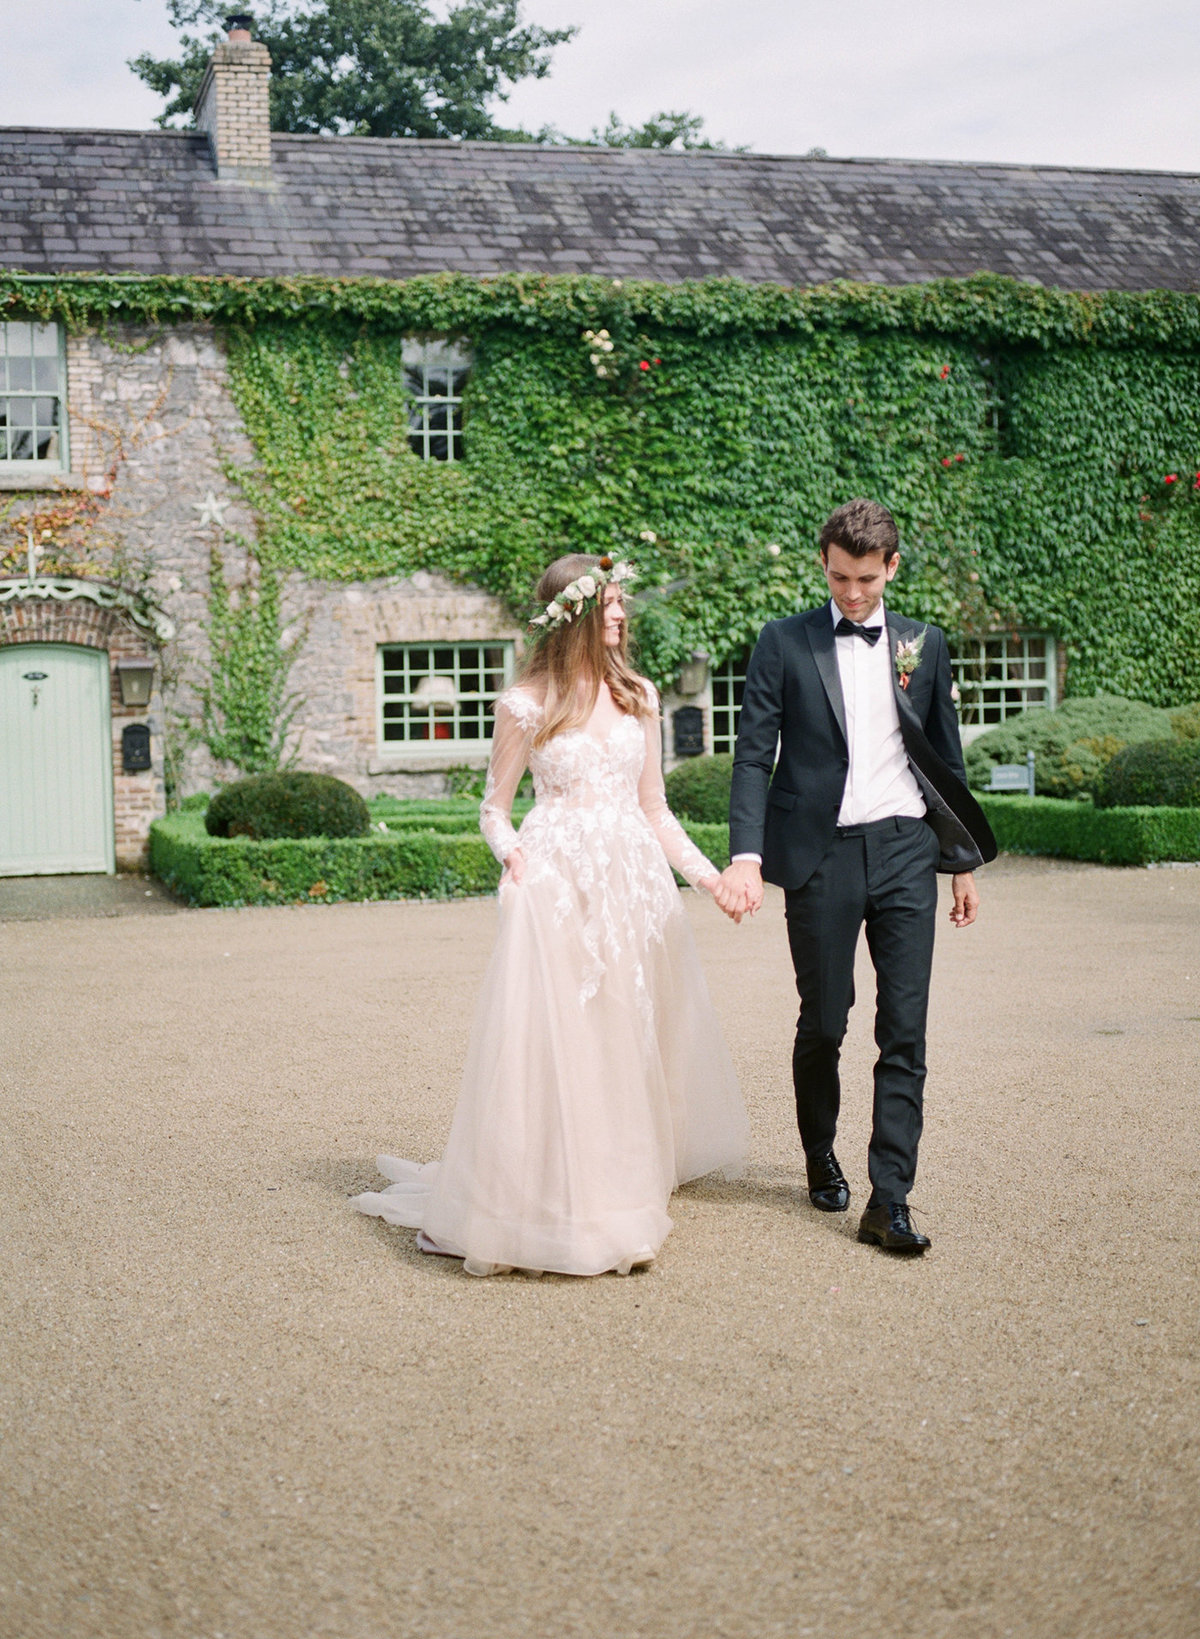 Destination Wedding Photographer - Ireland Editorial - Cliff at Lyons Kildare Ireland - Sarah Sunstrom Photography - 43